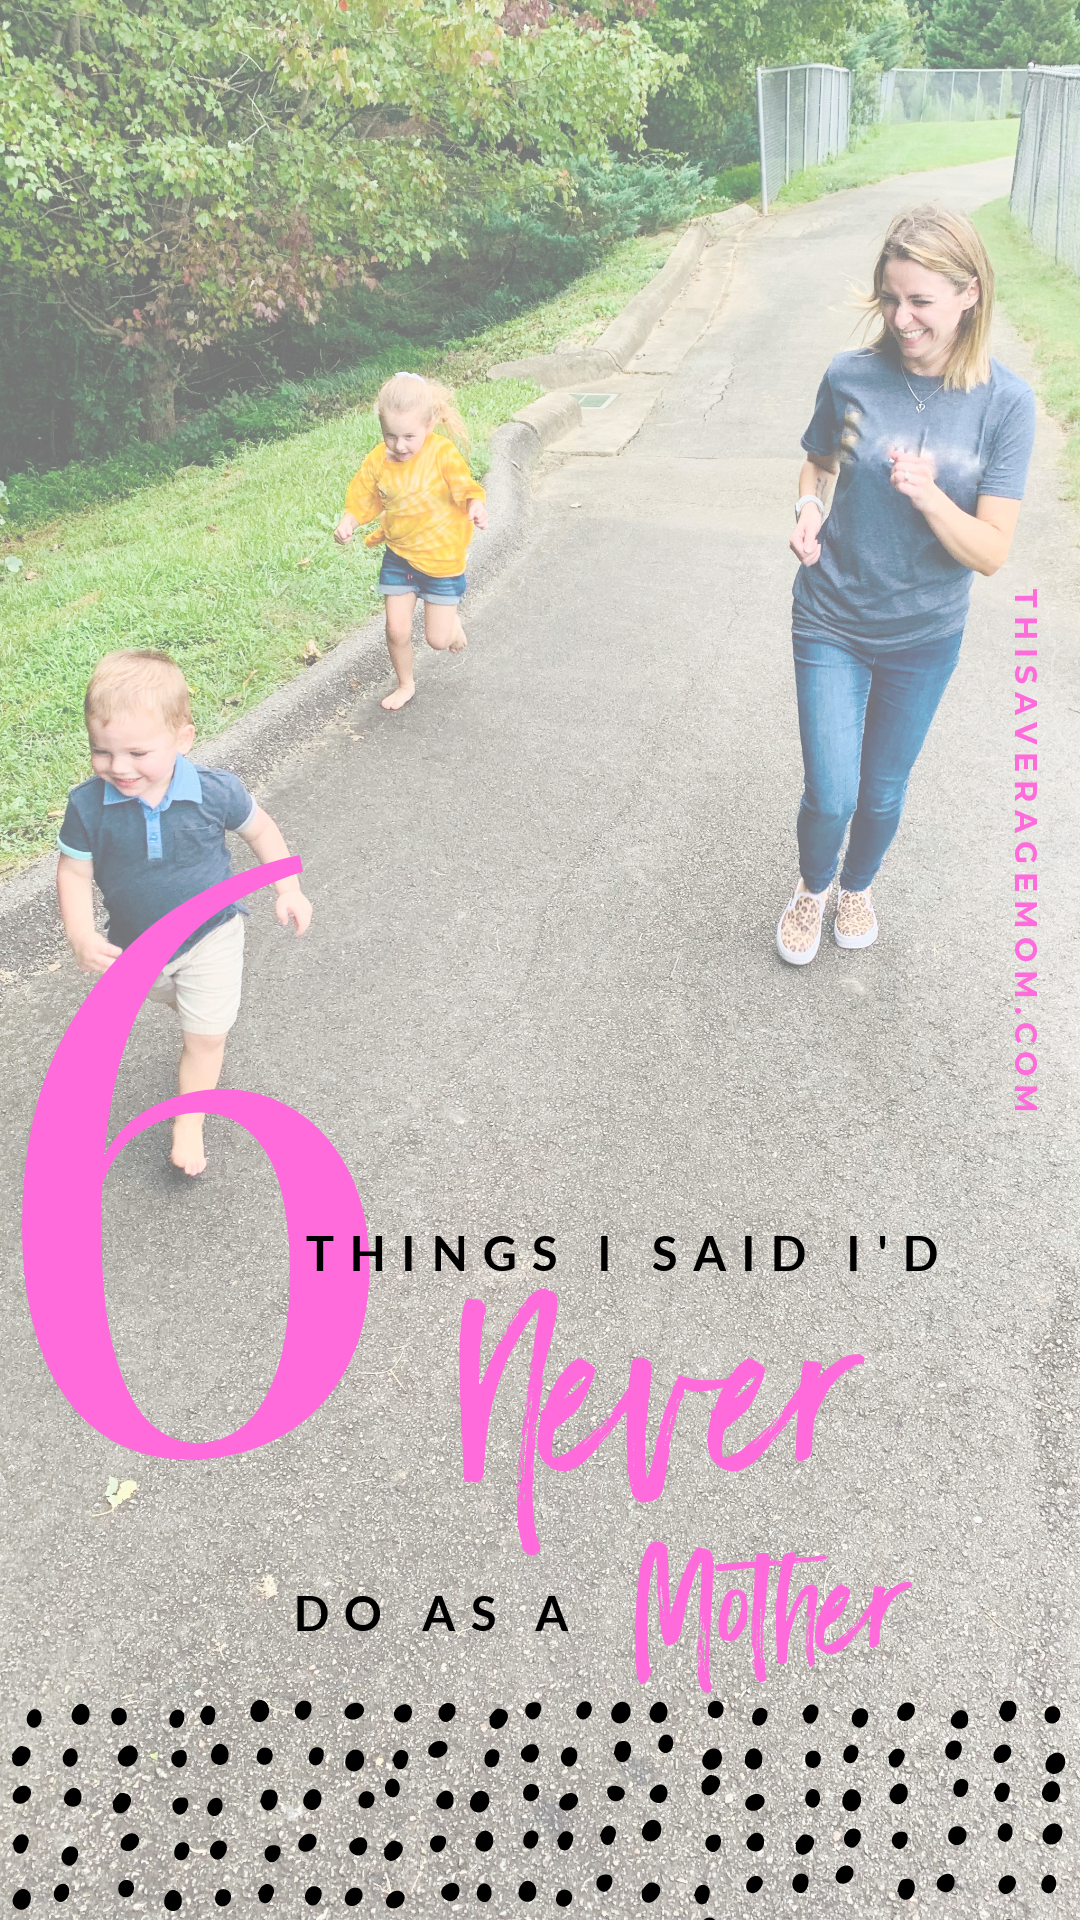 """Before you had kids, did you ever watch a mom and think to yourself, """"I'd never let my kid do that!"""" If so, you're not alone. Here's 6 things I said I'd never do as a mother that (spoiler alert) I totally believe in now. #motherhood #momlife"""